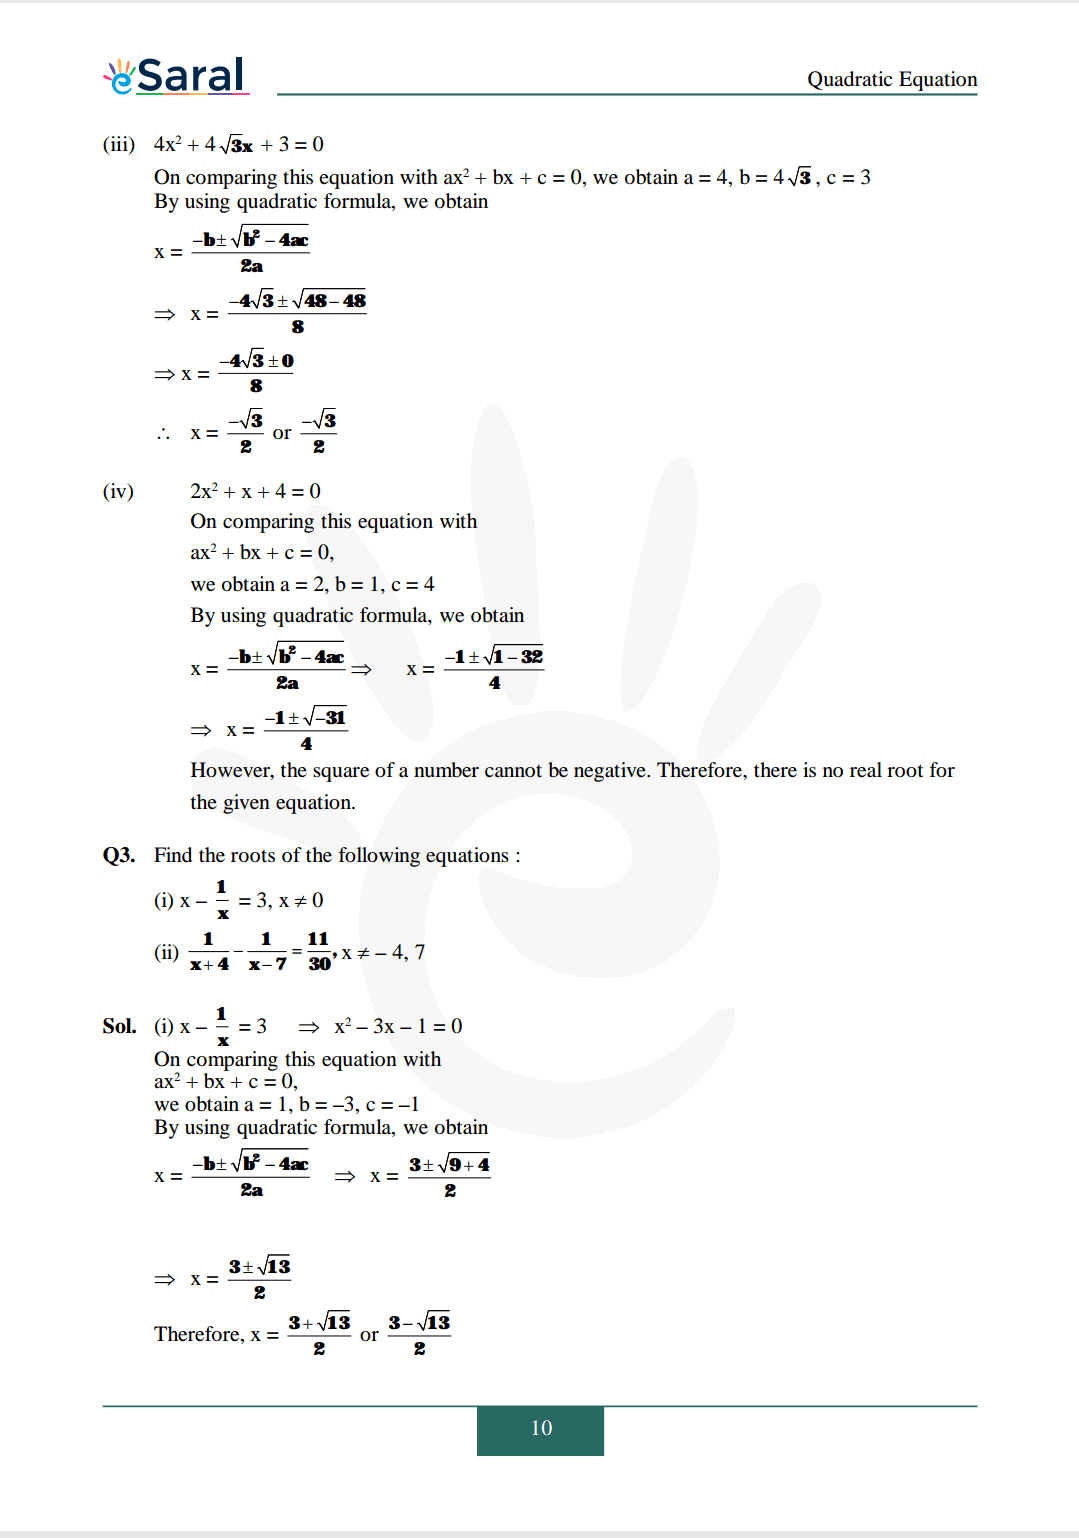 Class 10 Maths Chapter 4 exercise 4.3 solutions Image 3